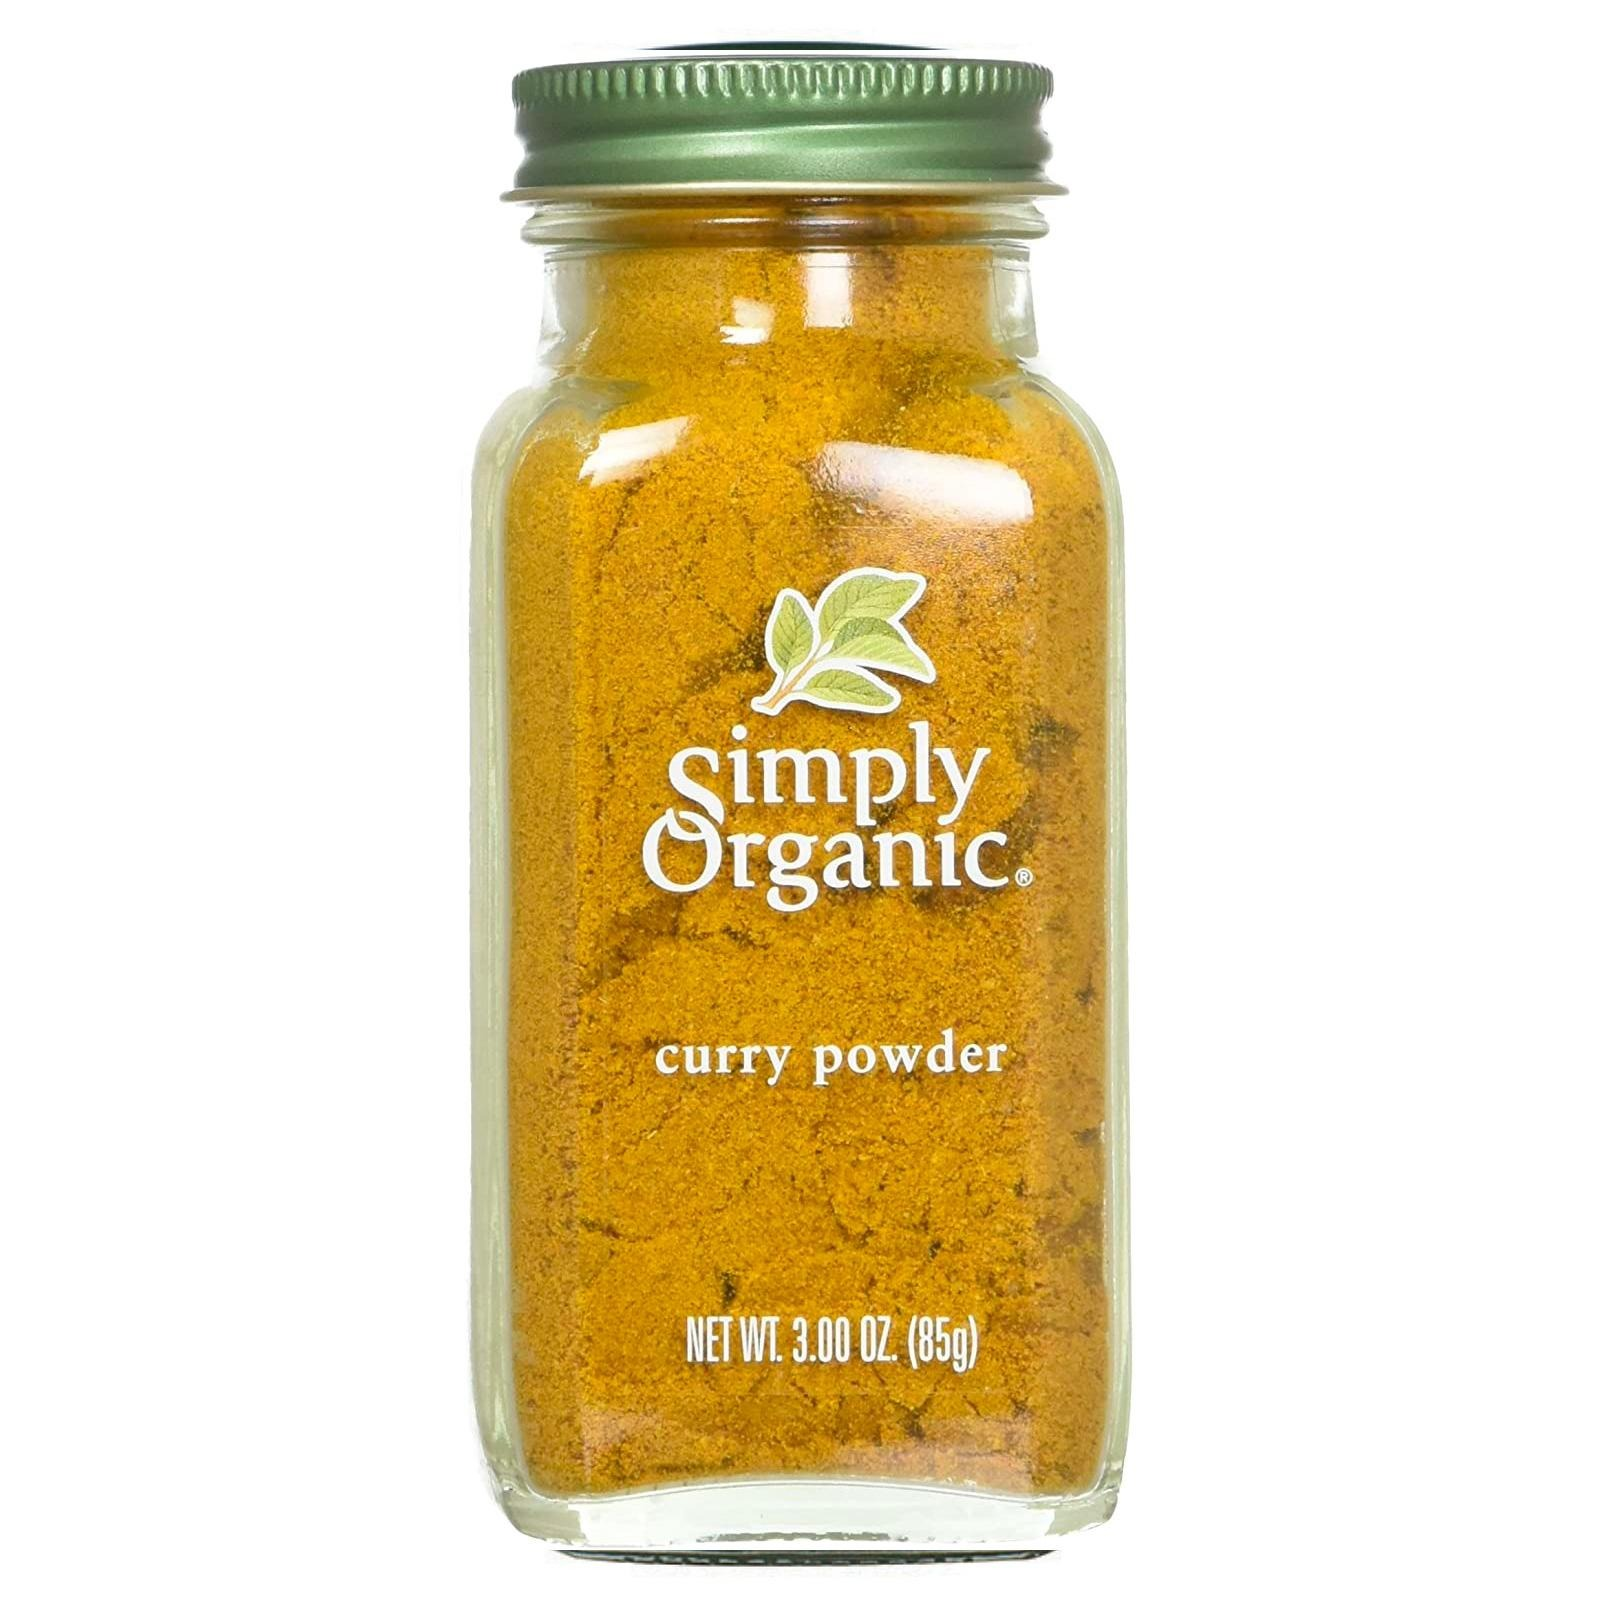 Simply Organic Curry Powder, 85g